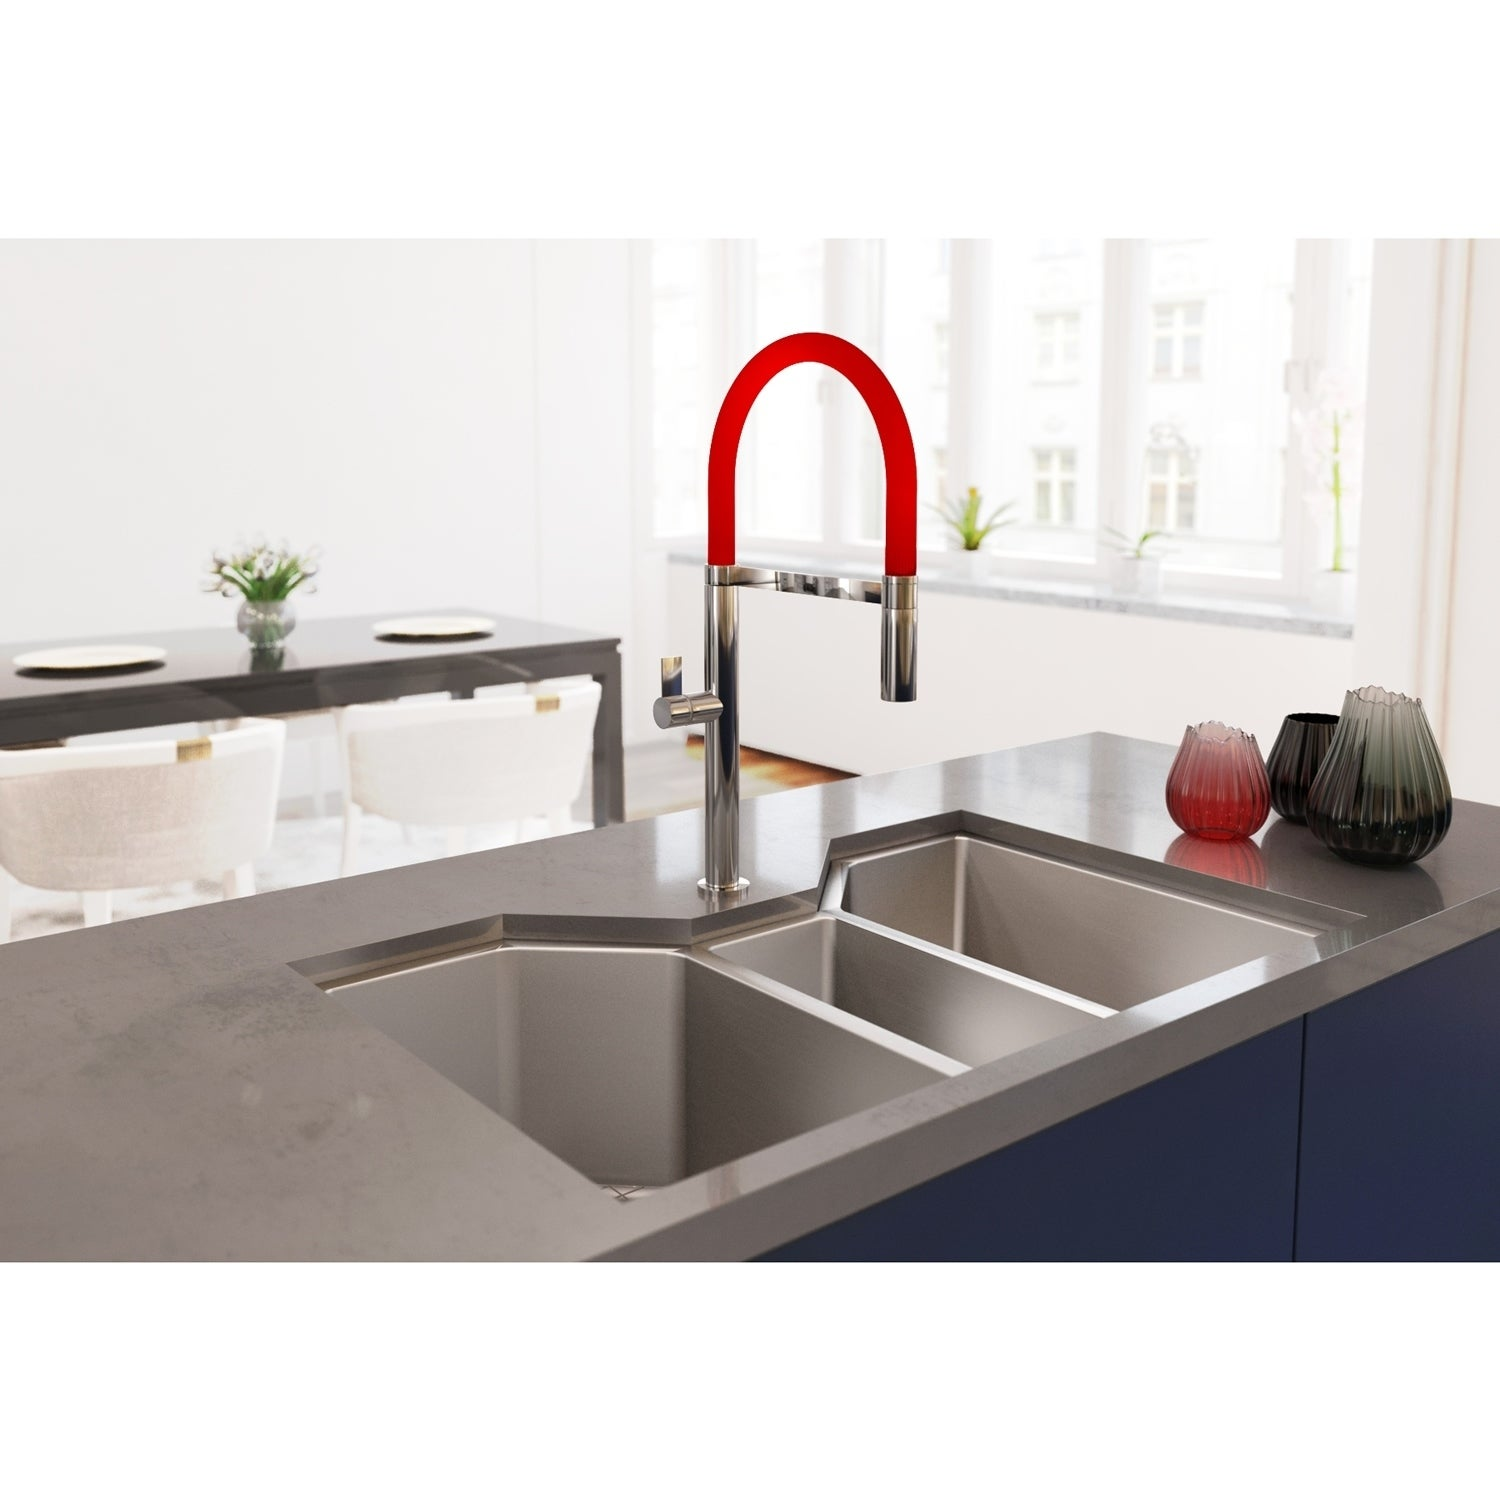 kitchen double your with gauge purchase stainless undermount at sink cost inch steel bowl receive no